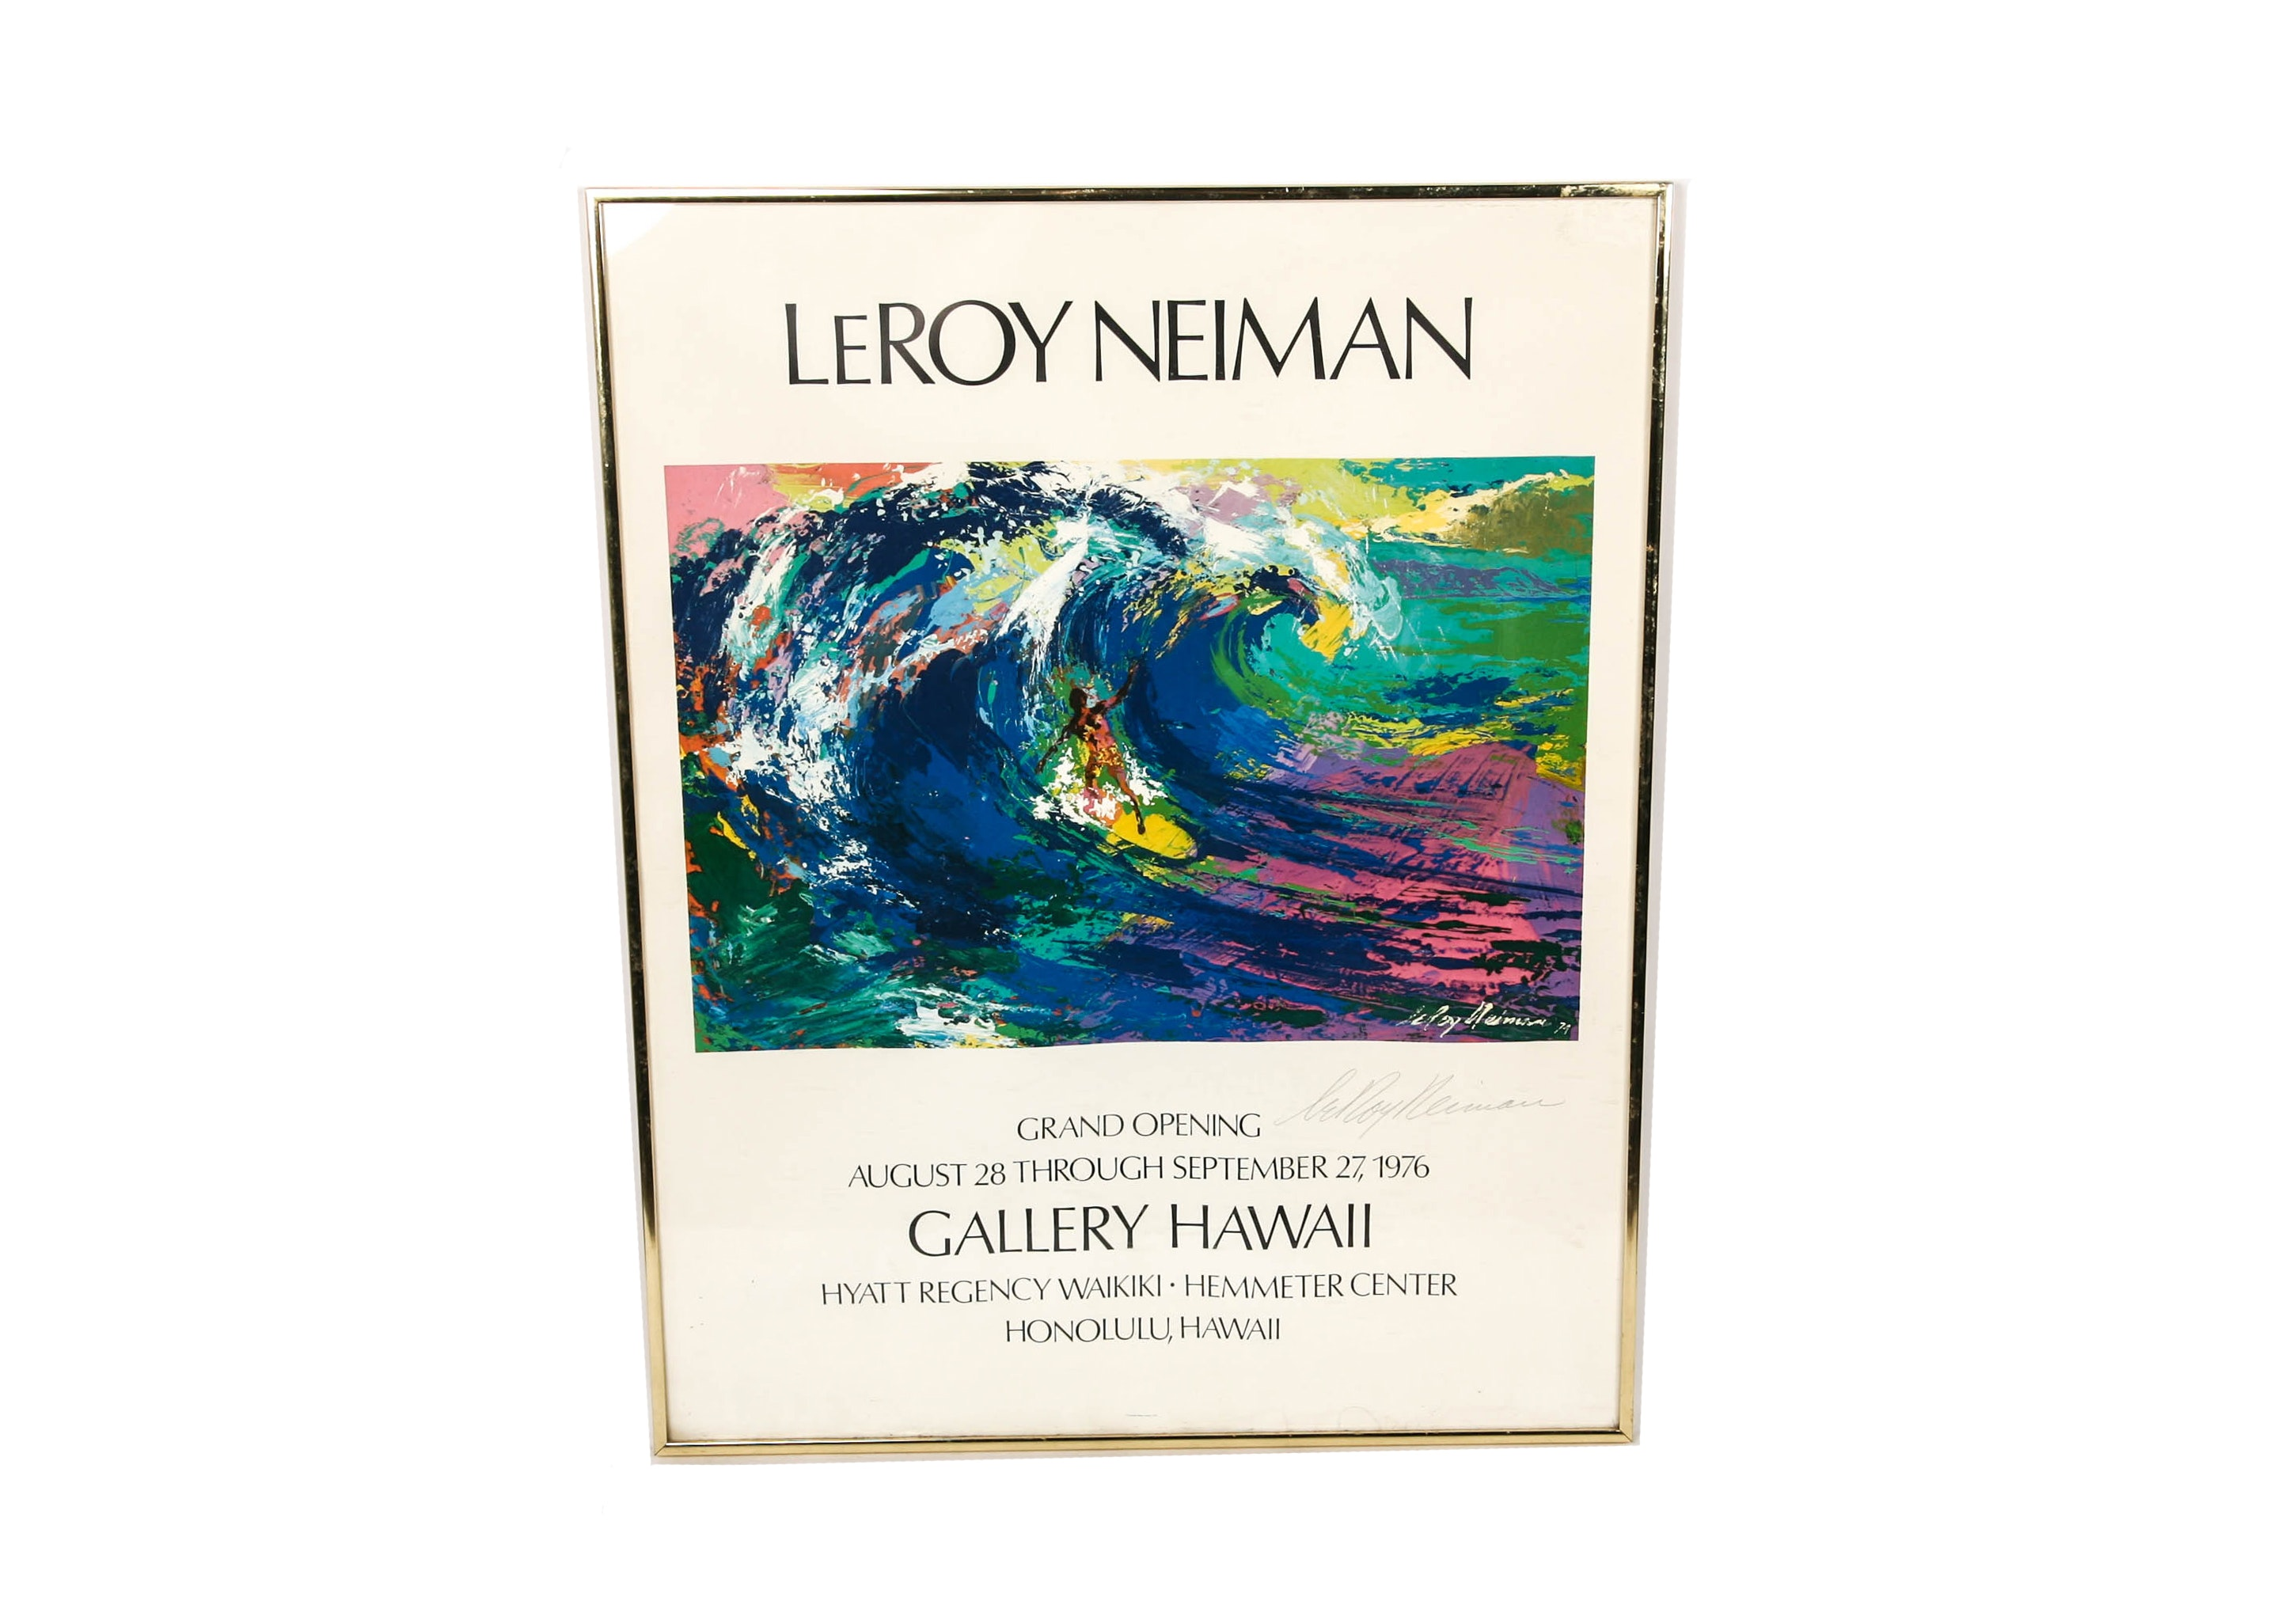 1976 Signed LeRoy Neiman Art Exhibition Poster